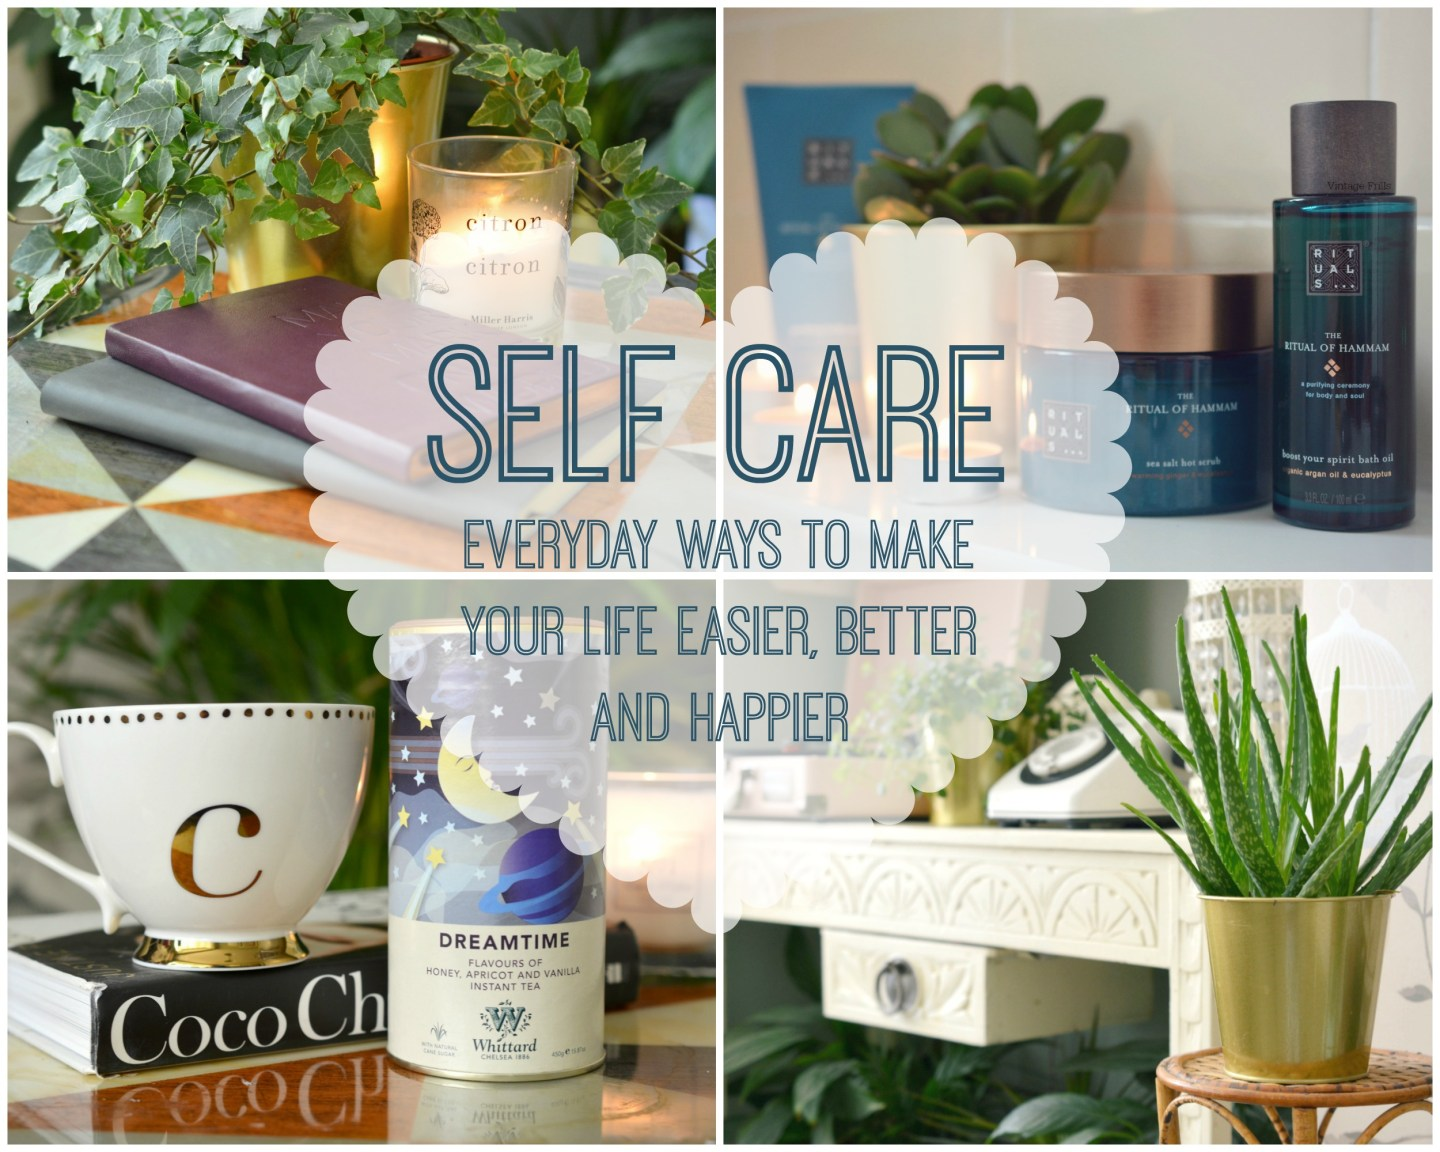 Self Care – Everyday Ways to Make Your Life Easier, Better and Happier